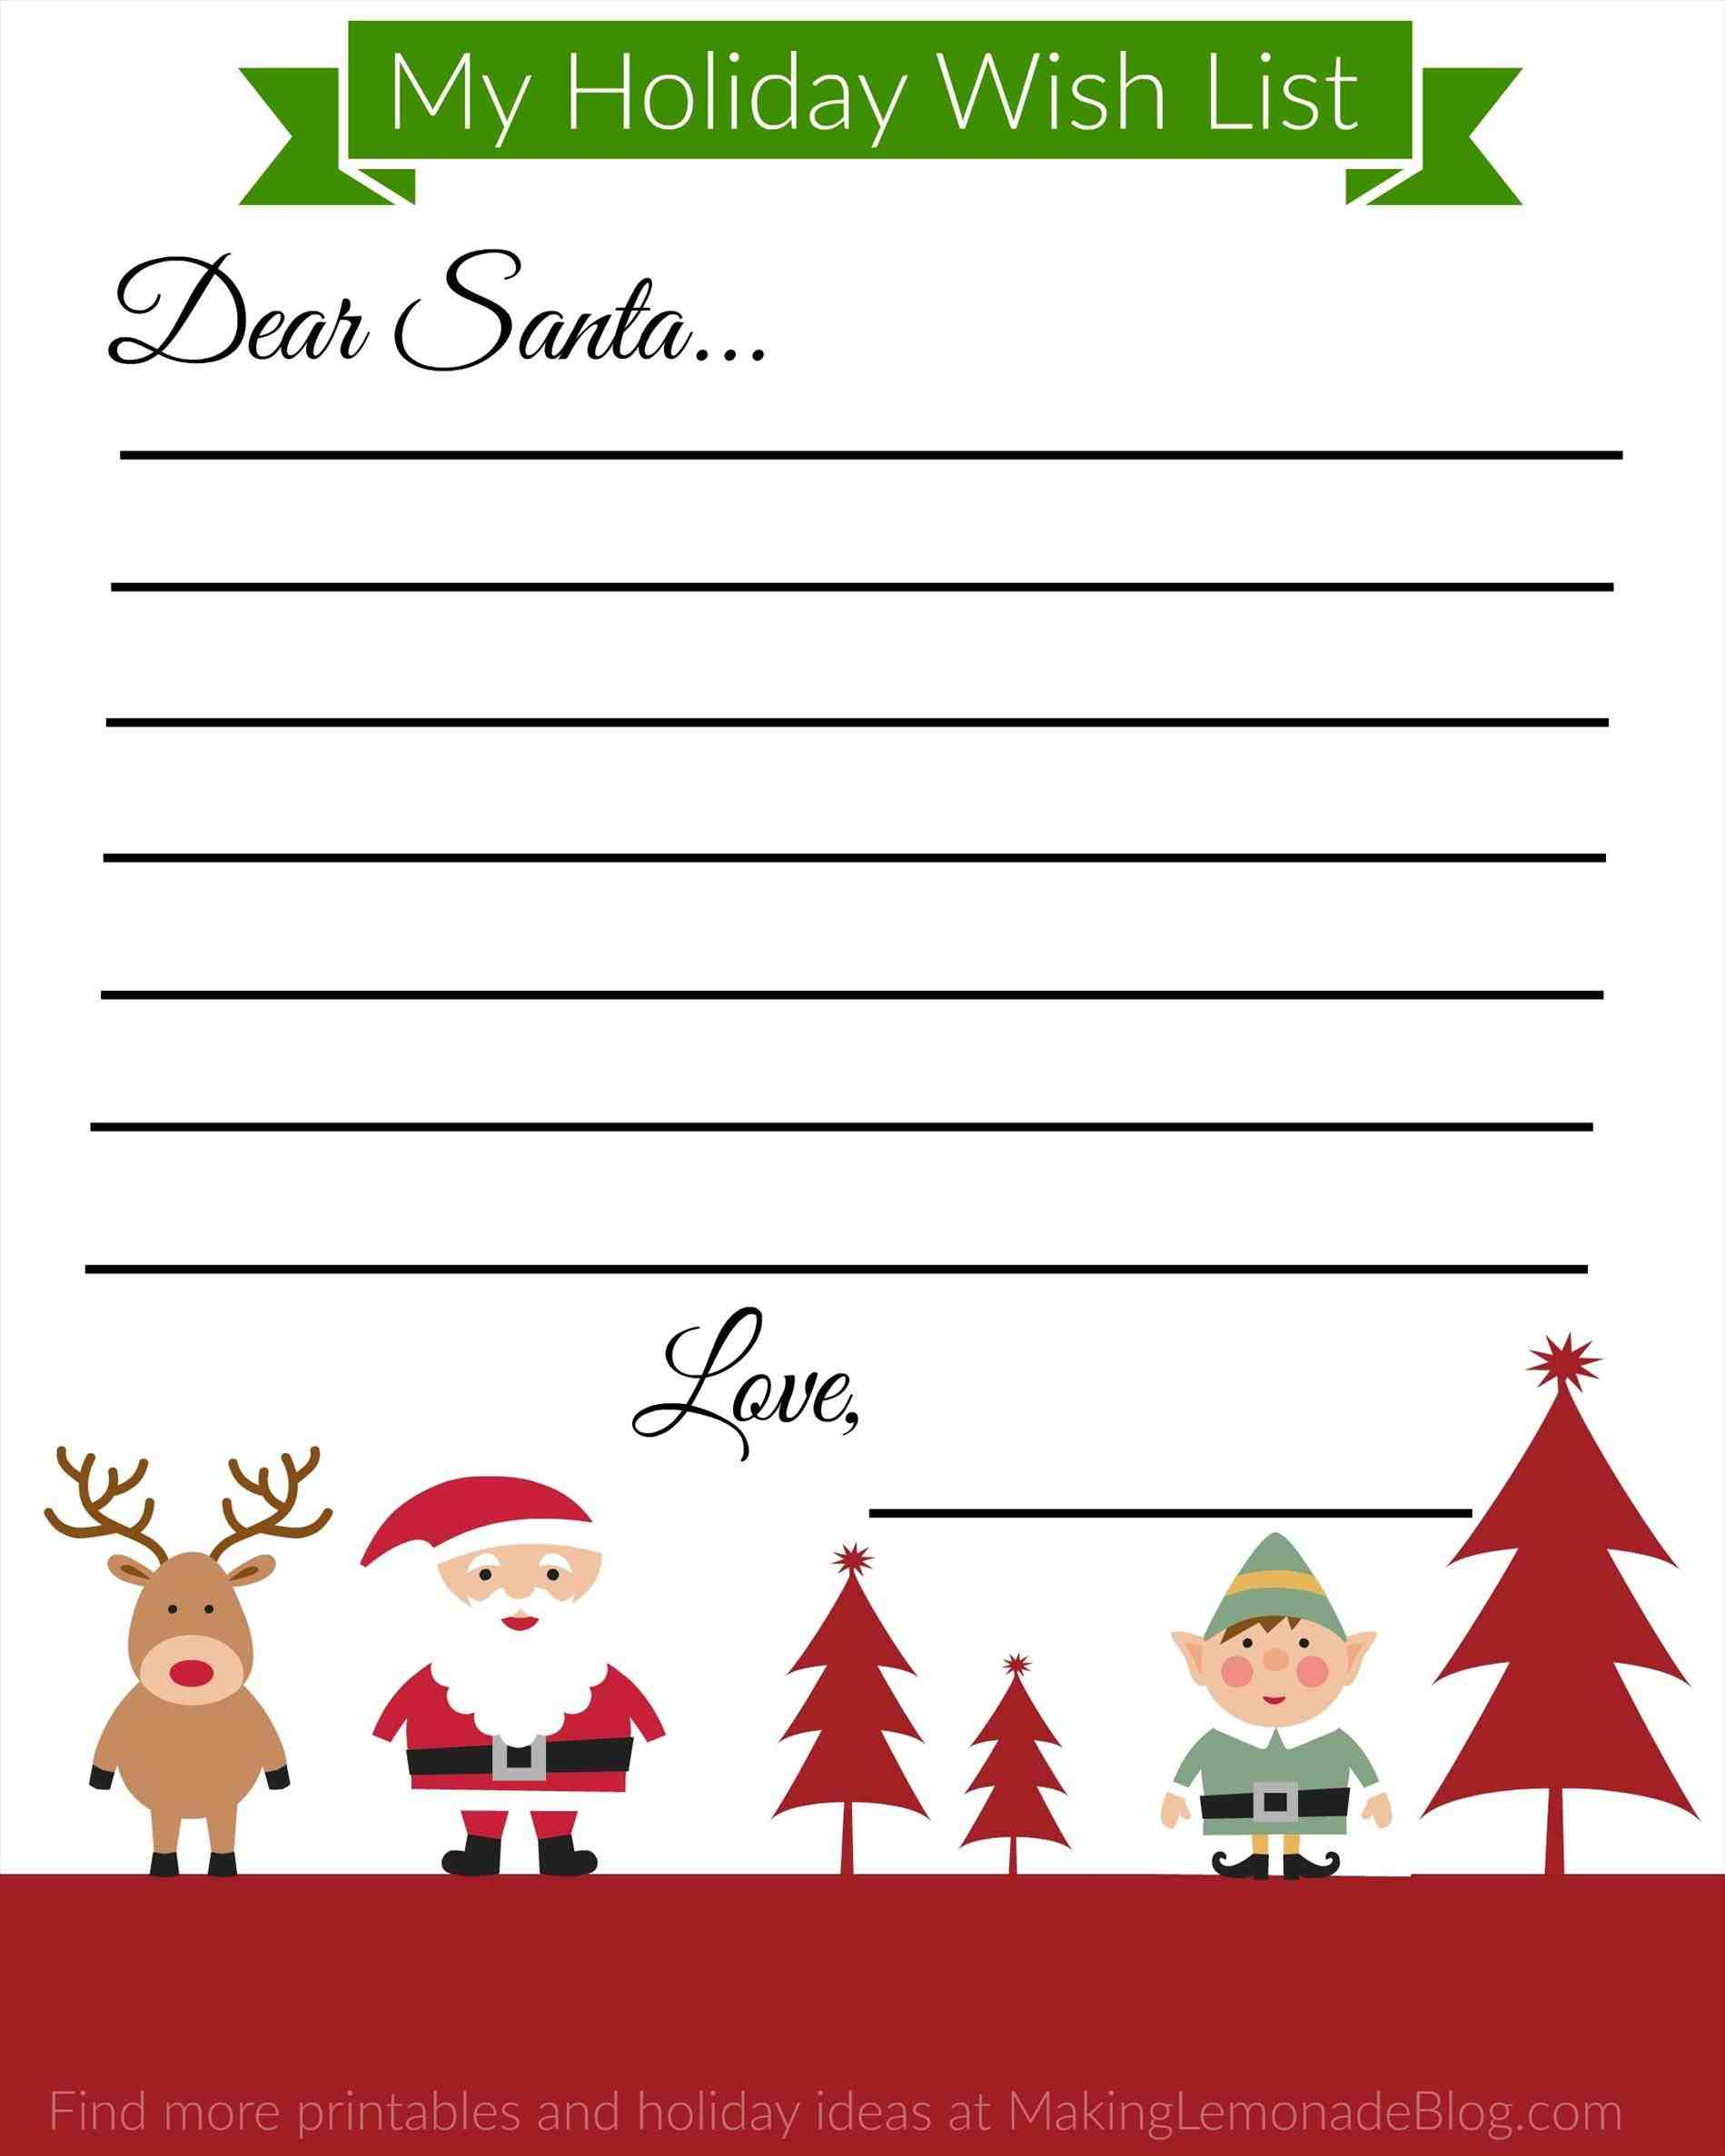 card mac business templaterhoutsourceitbookcom best Top 5 Free Christmas Card List Templates of word greeting card template mac business templaterhoutsourceitbookcom